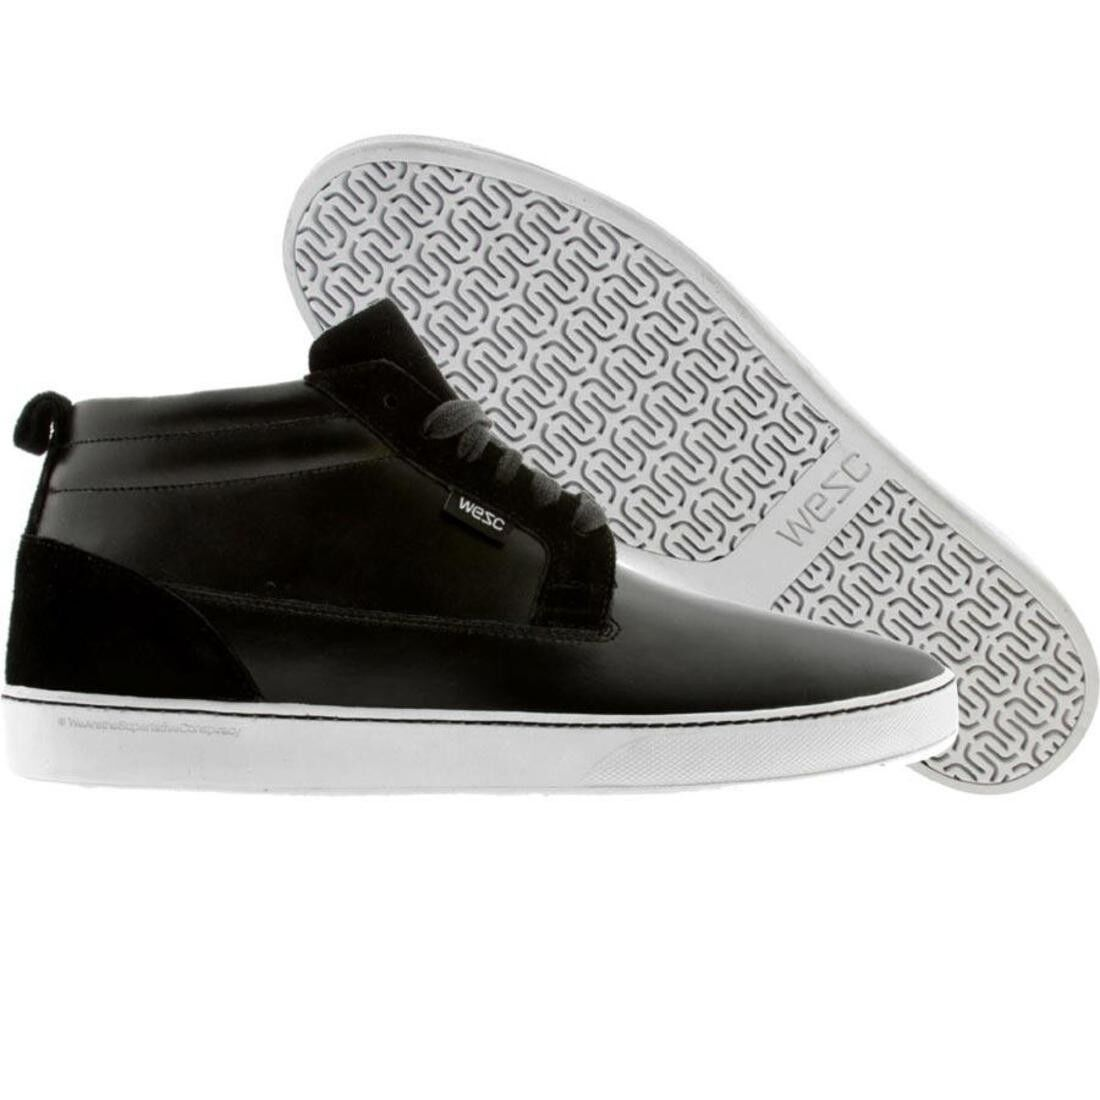 factory price bc9d7 08929 Gentleman Lady  109.99 WeSC Hagelin (black) shoes B105499999 flagship  flagship flagship store Let our goods go to the world Very good  classification 6ab023